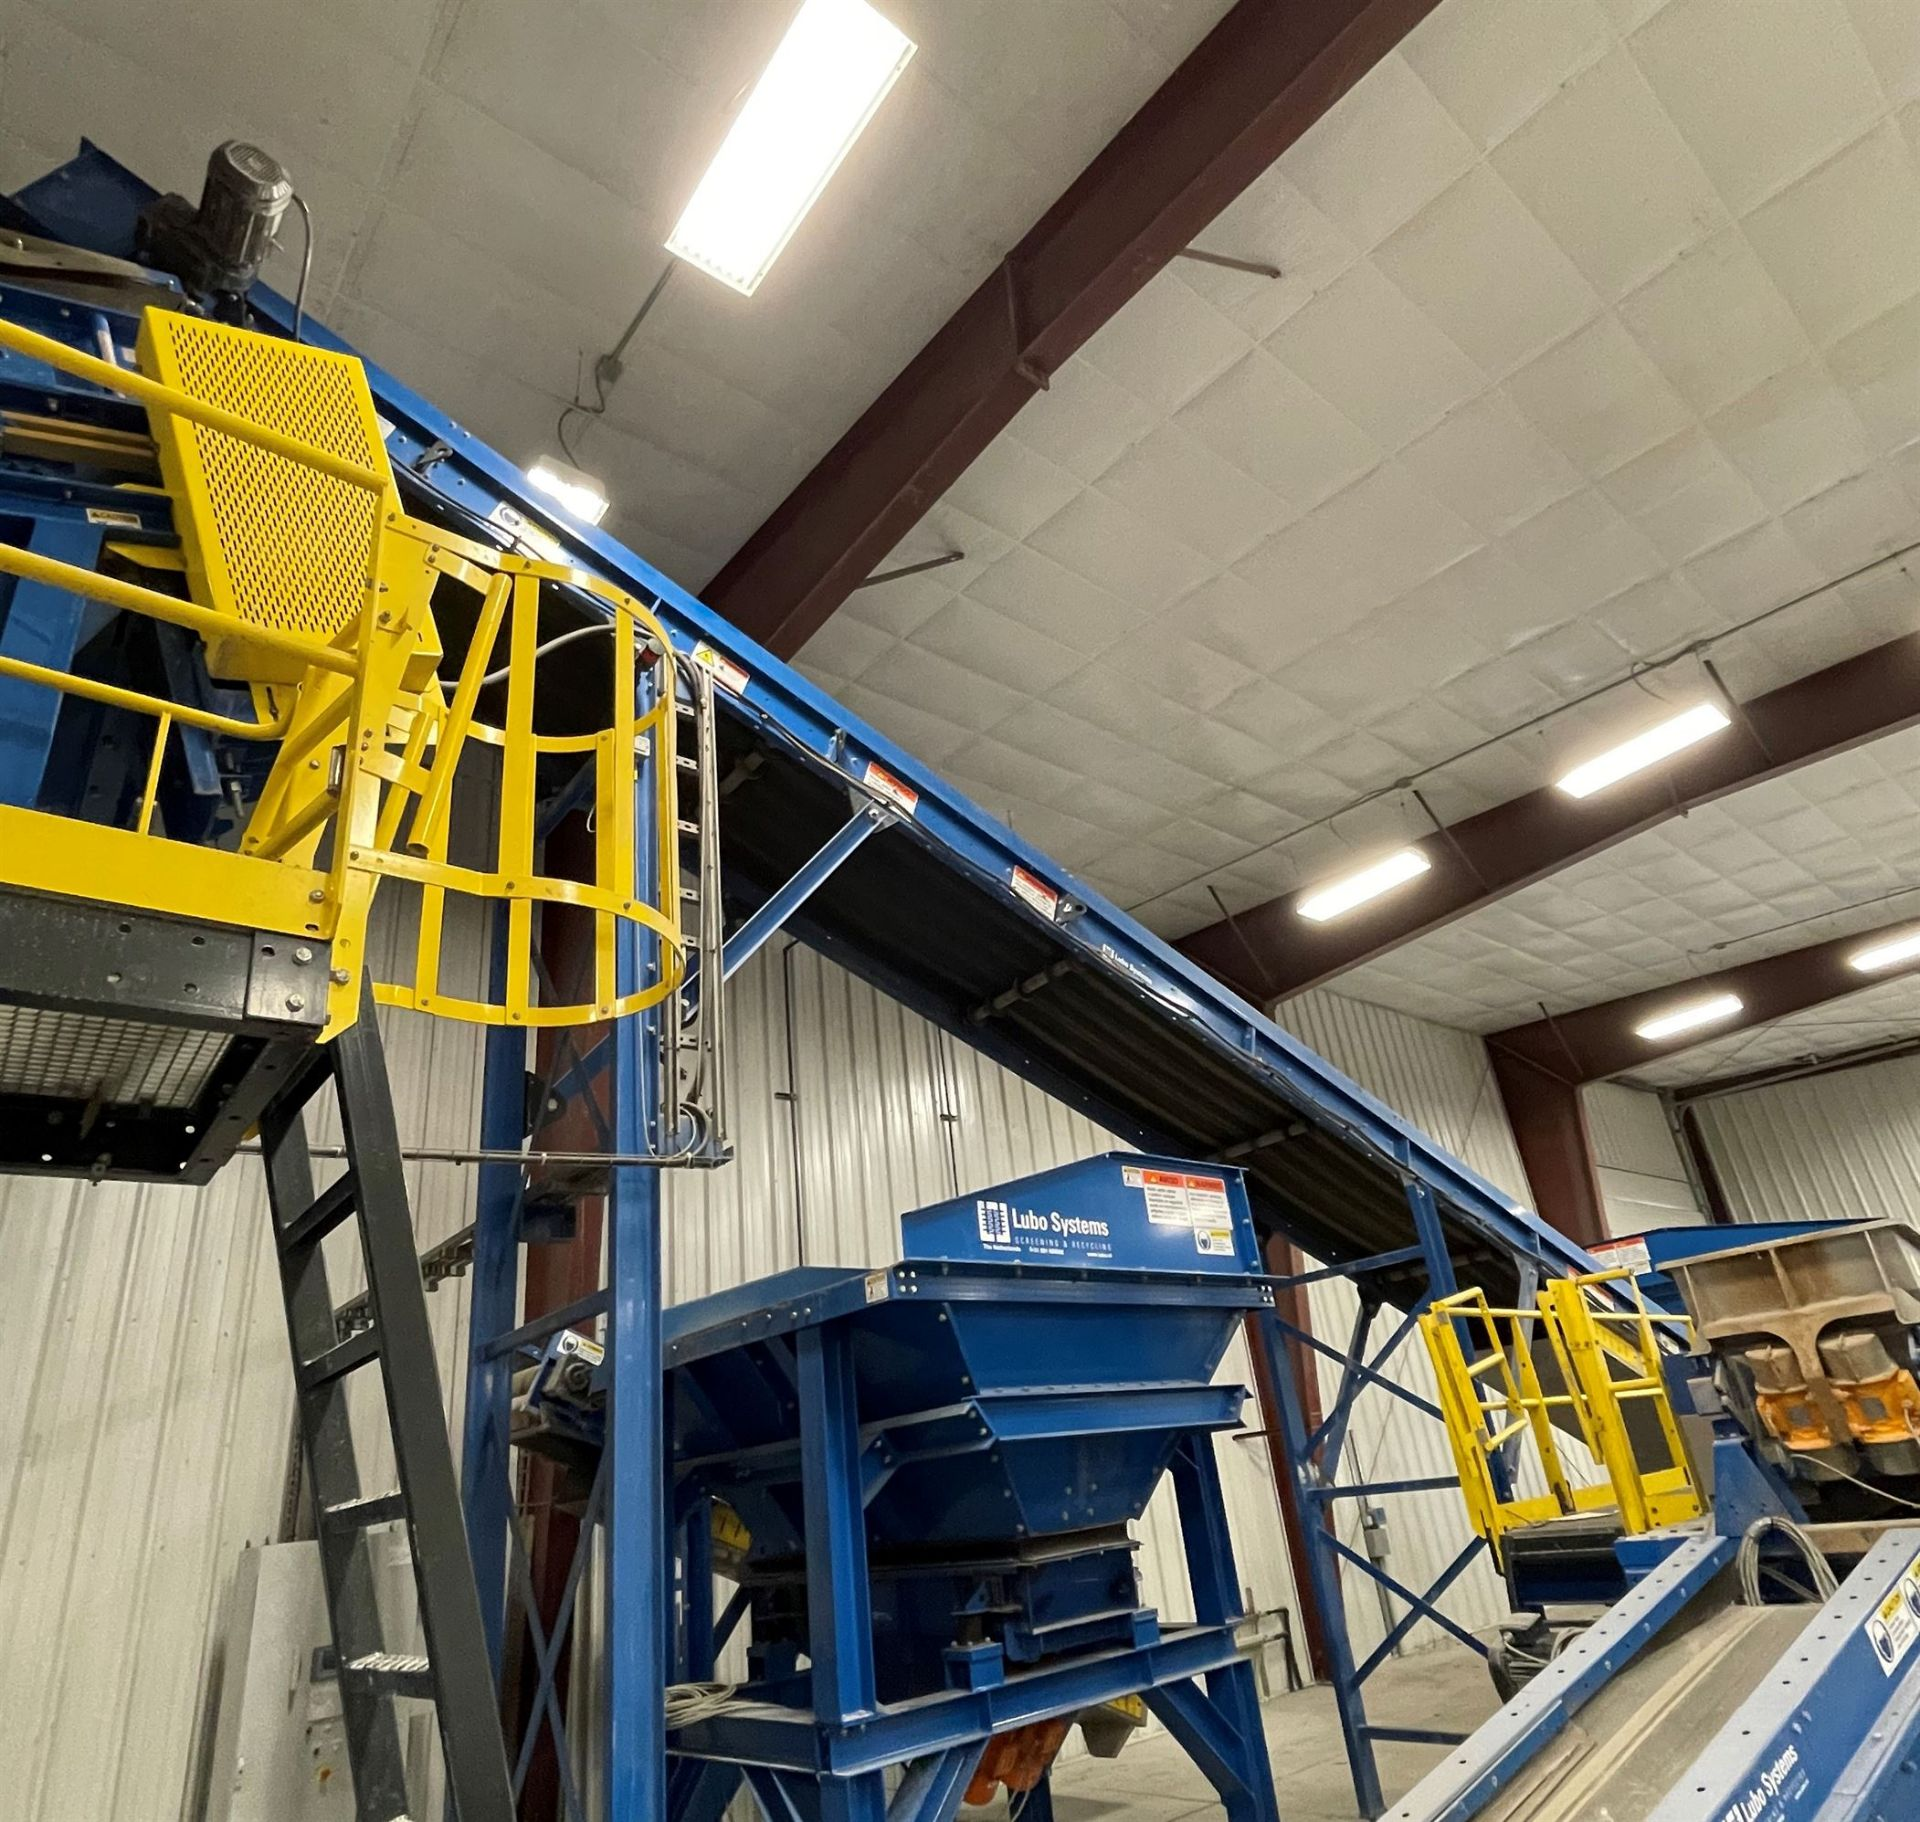 2015 LUBO SYSTEMS TBL 1000x15000 Inclined Belt Conveyor, s/n 800108-0040, 1000mm x 5000mm, SEW 3.7 - Image 3 of 5